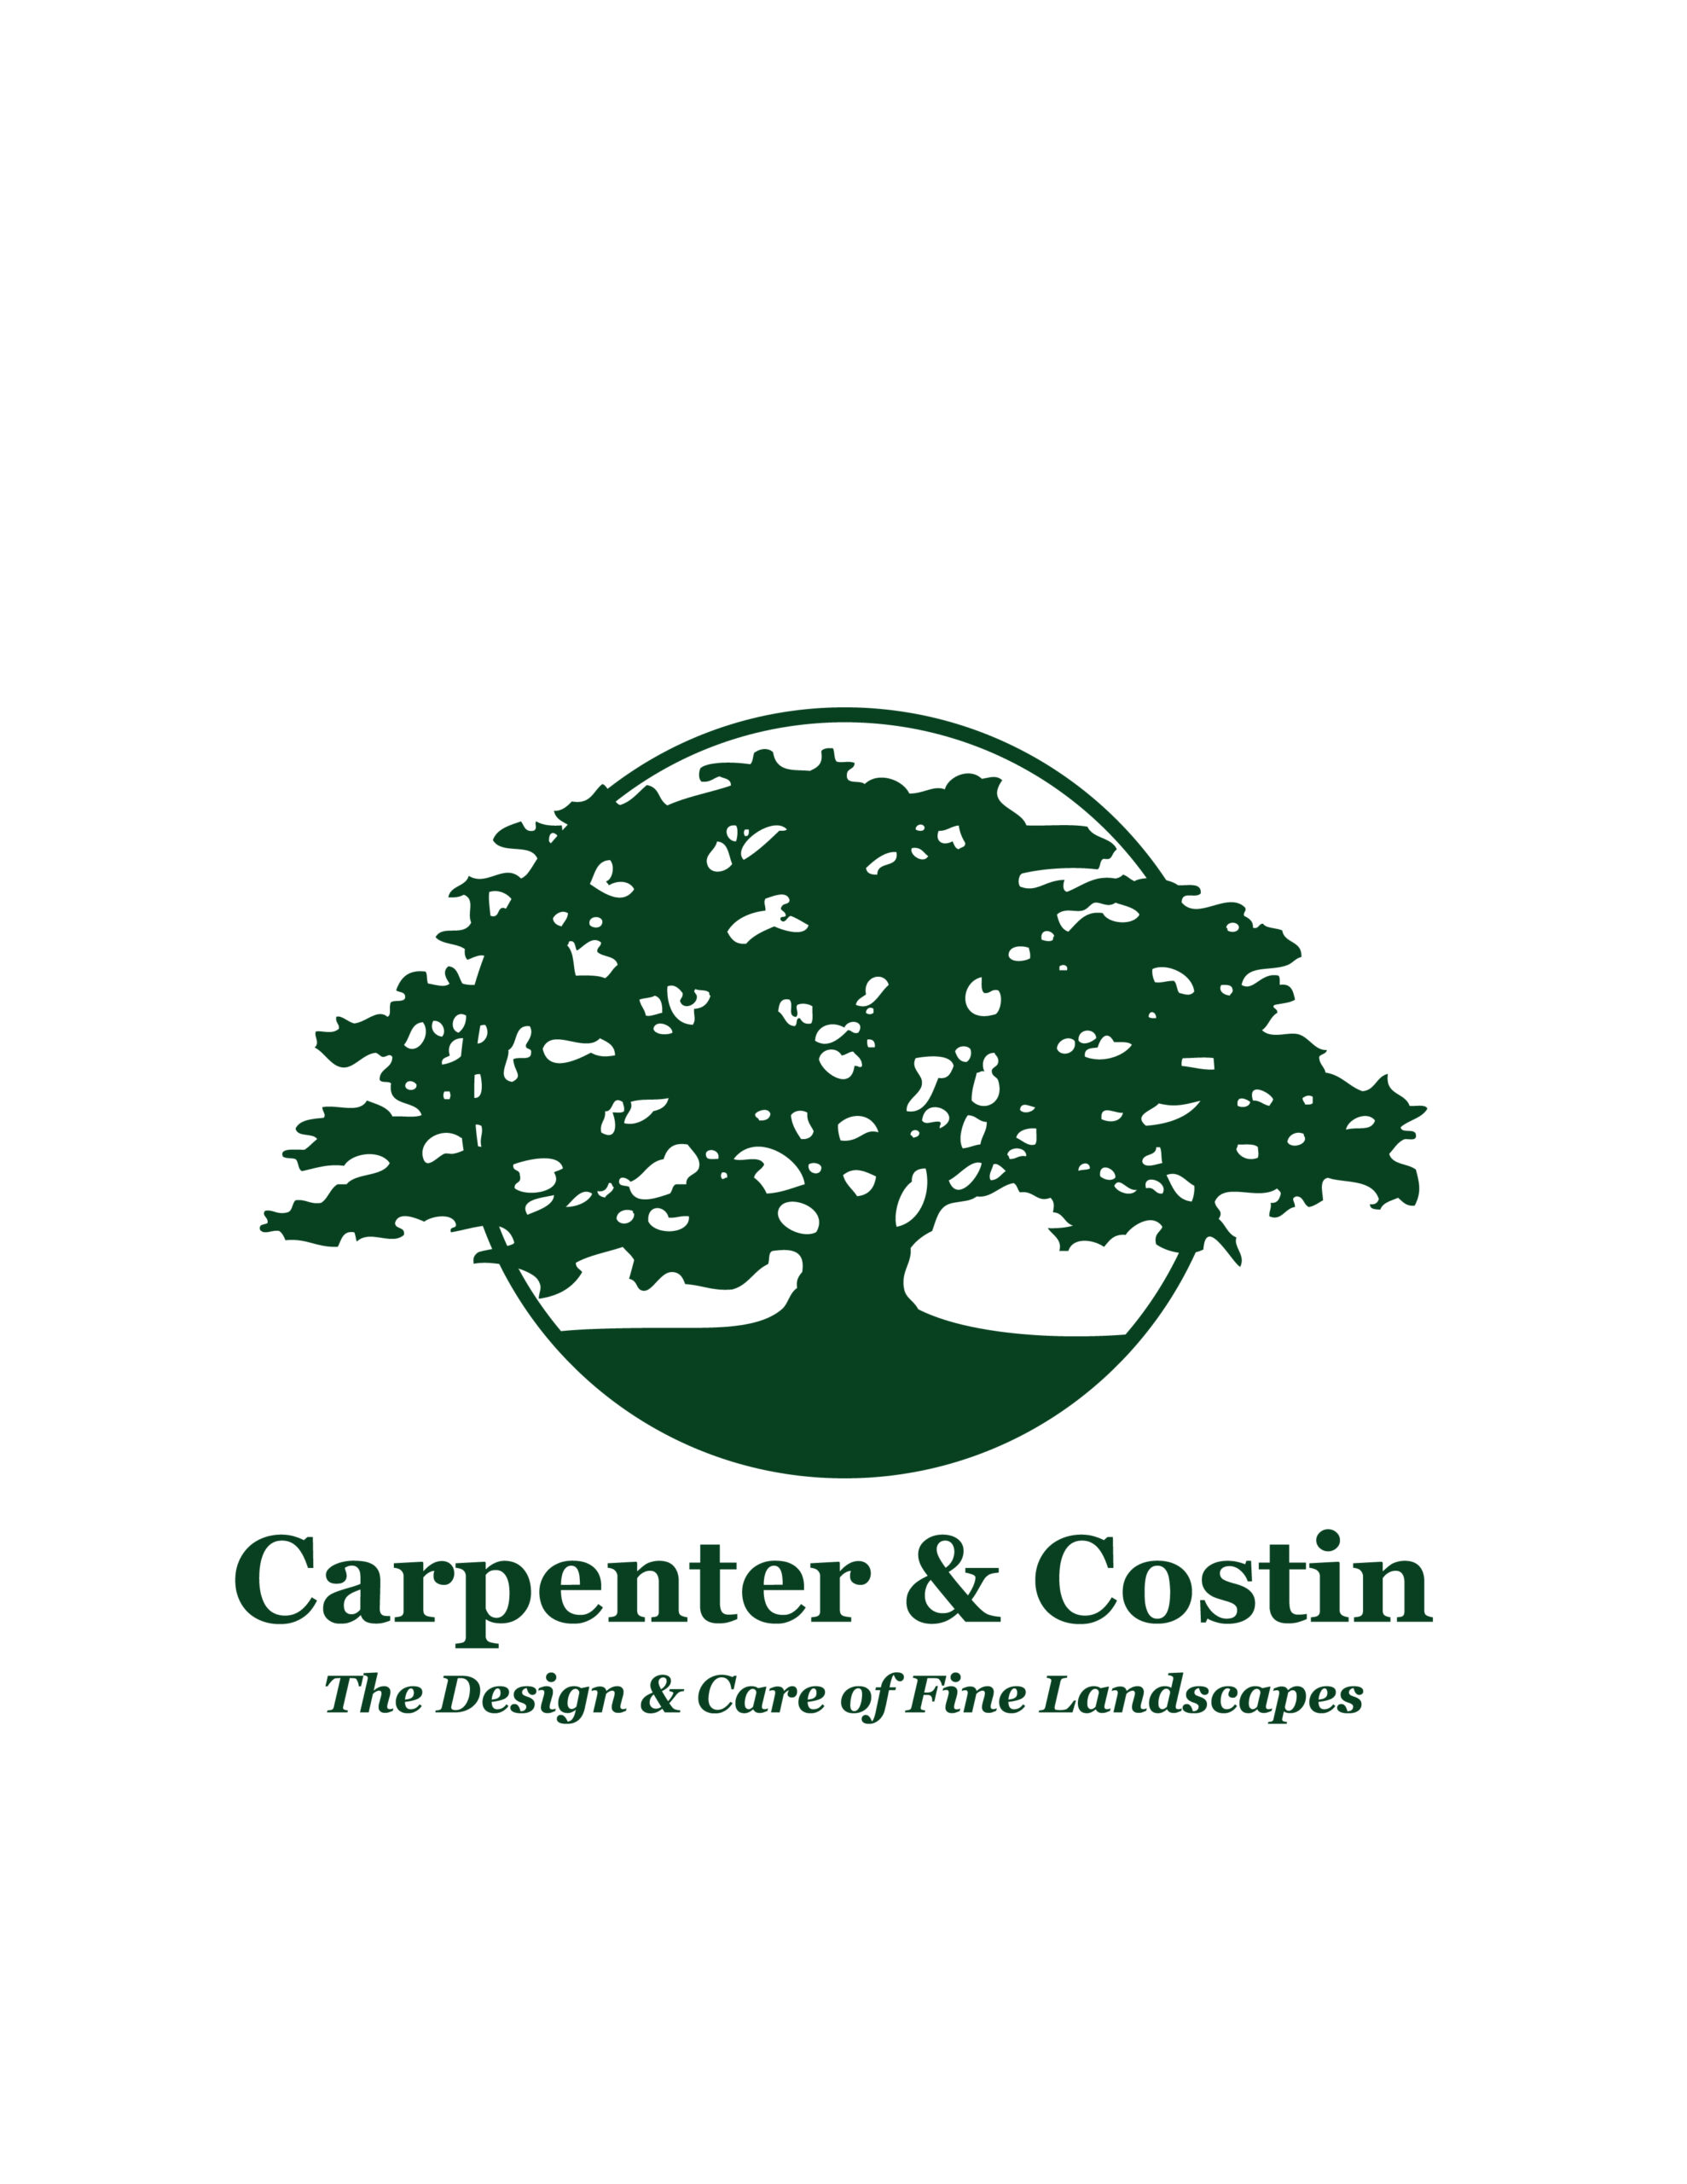 https://www.summitfc.org/wp-content/uploads/2020/06/Carpenter-Costin-LOGO-scaled.jpg